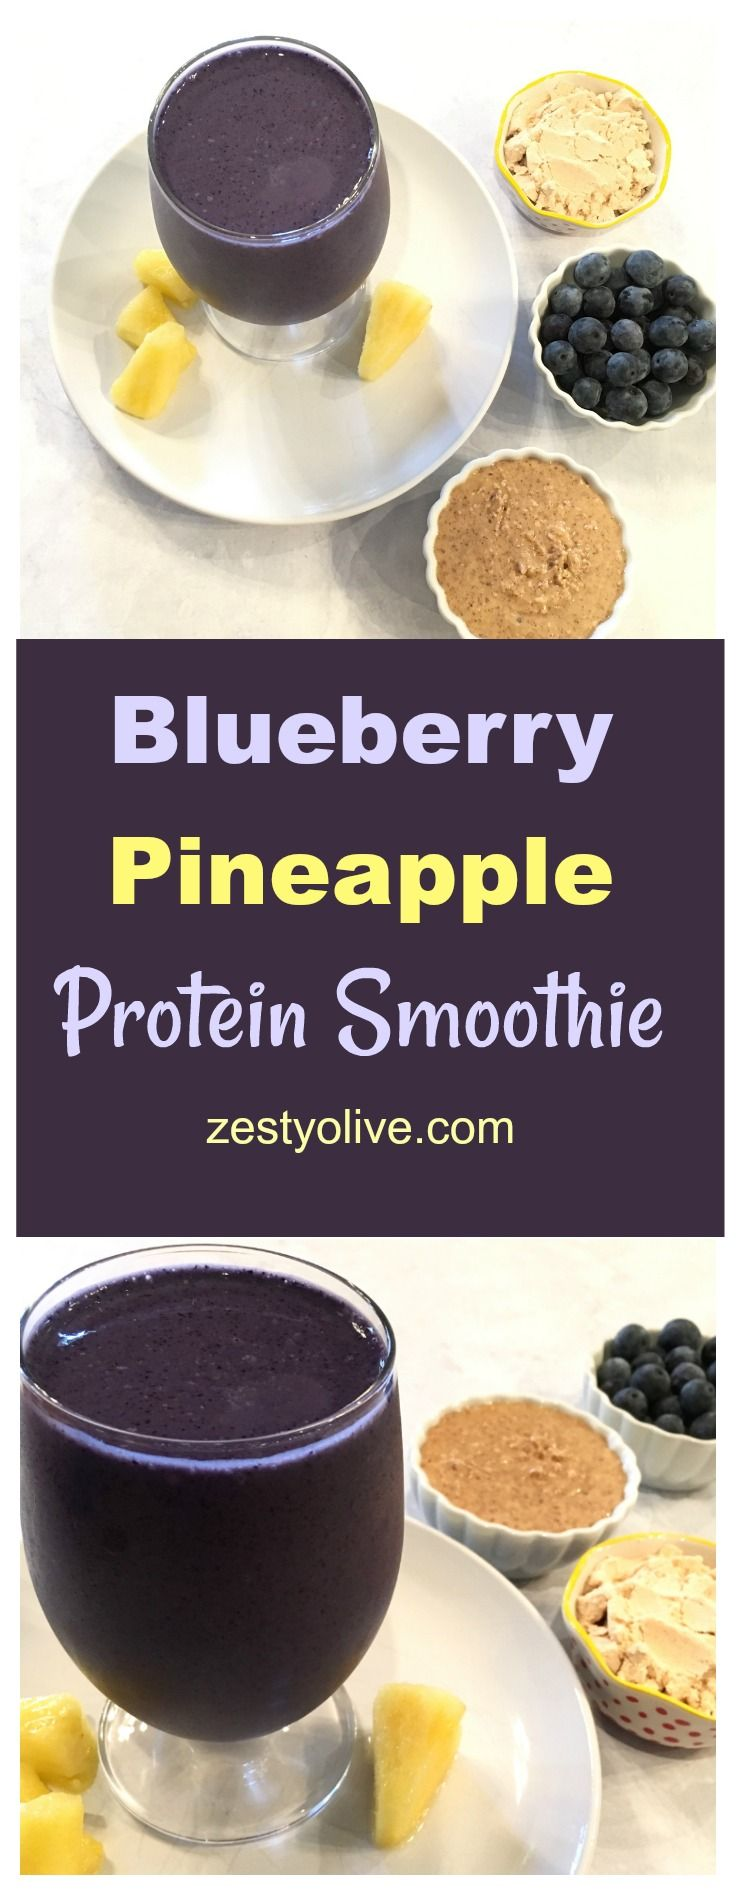 Blueberry Pineapple Protein Smoothie